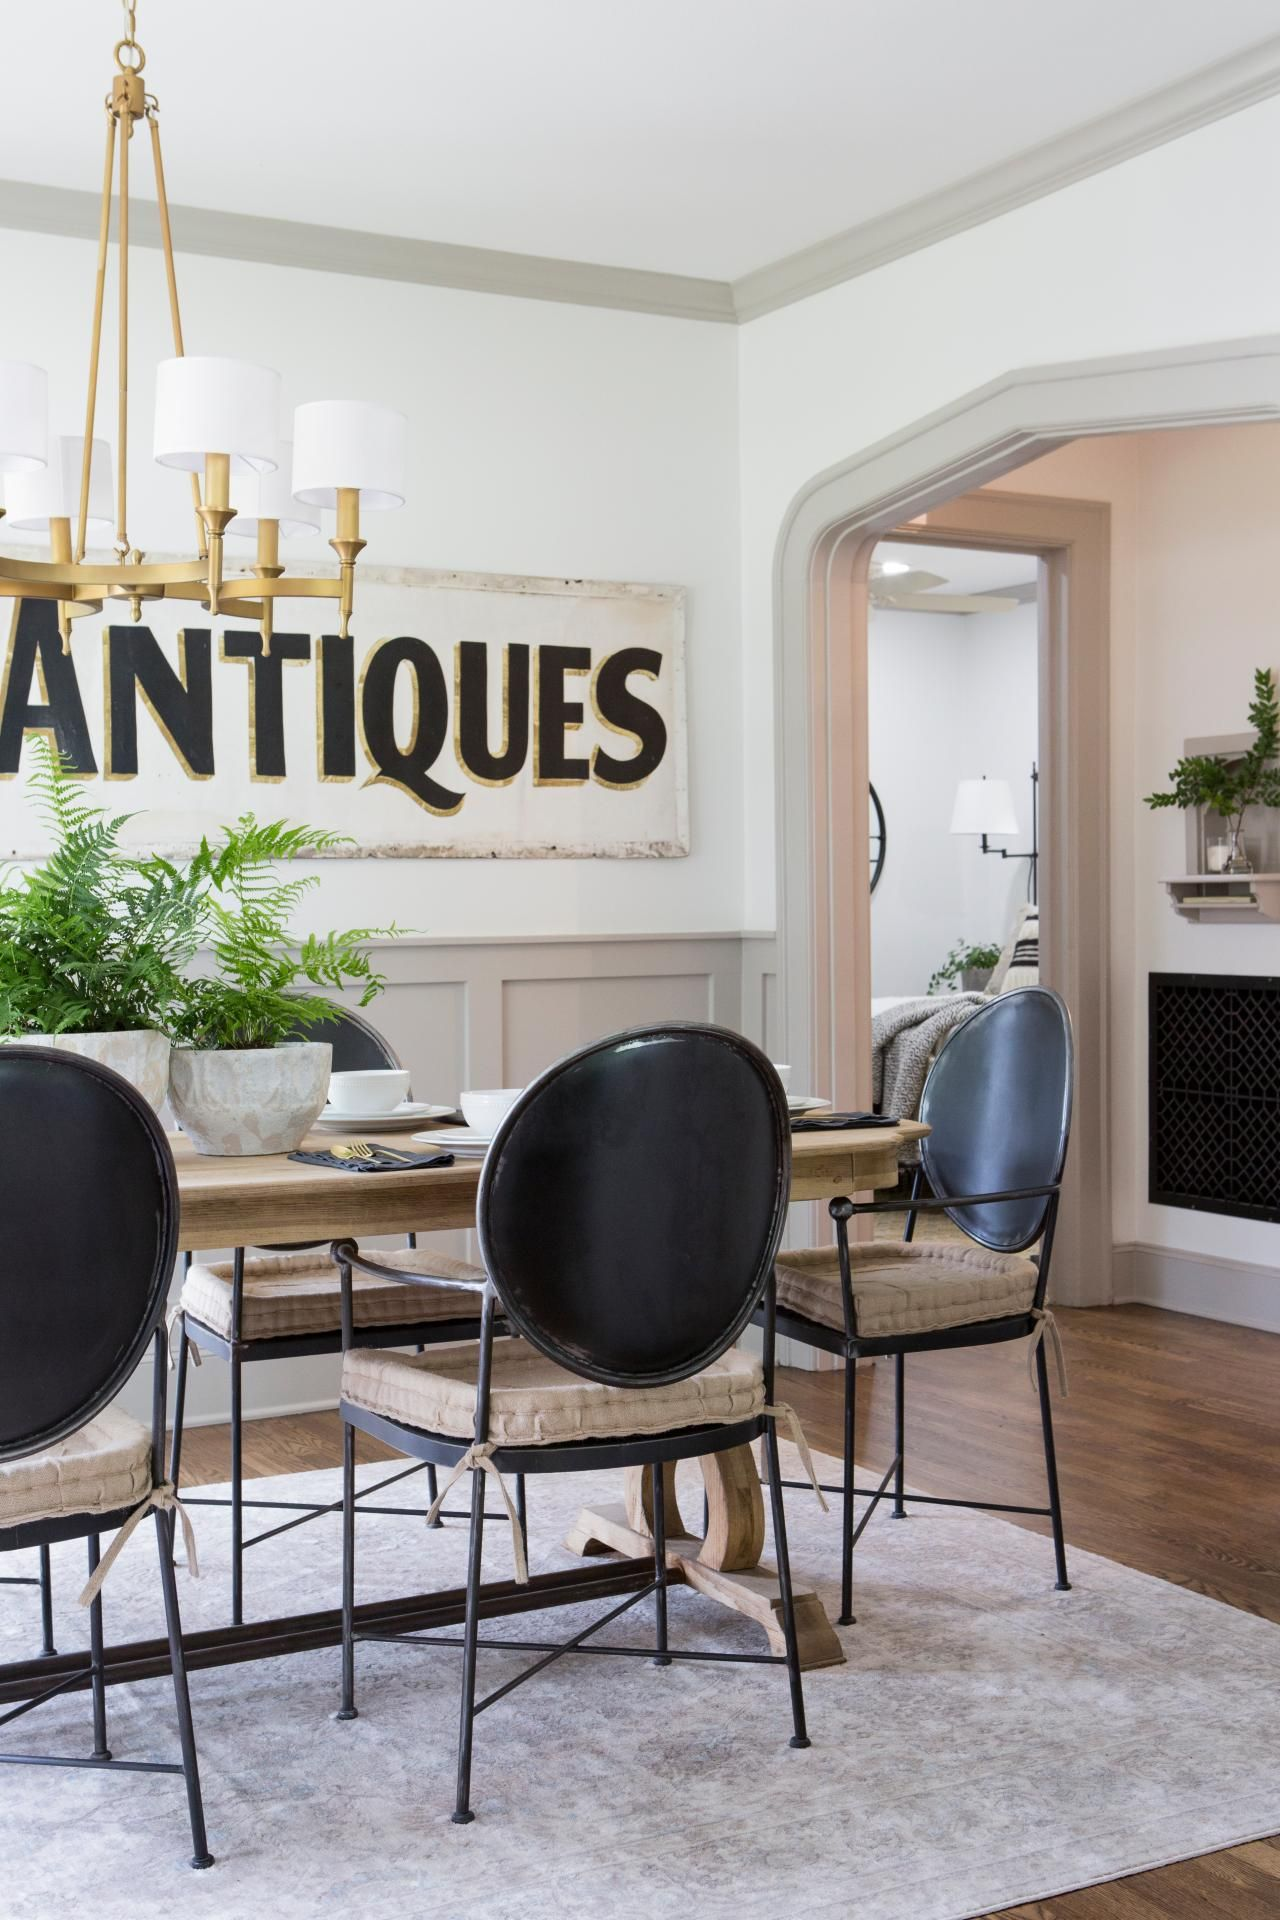 A Large Antiques Sign Stars As The Art In A Dining Room With